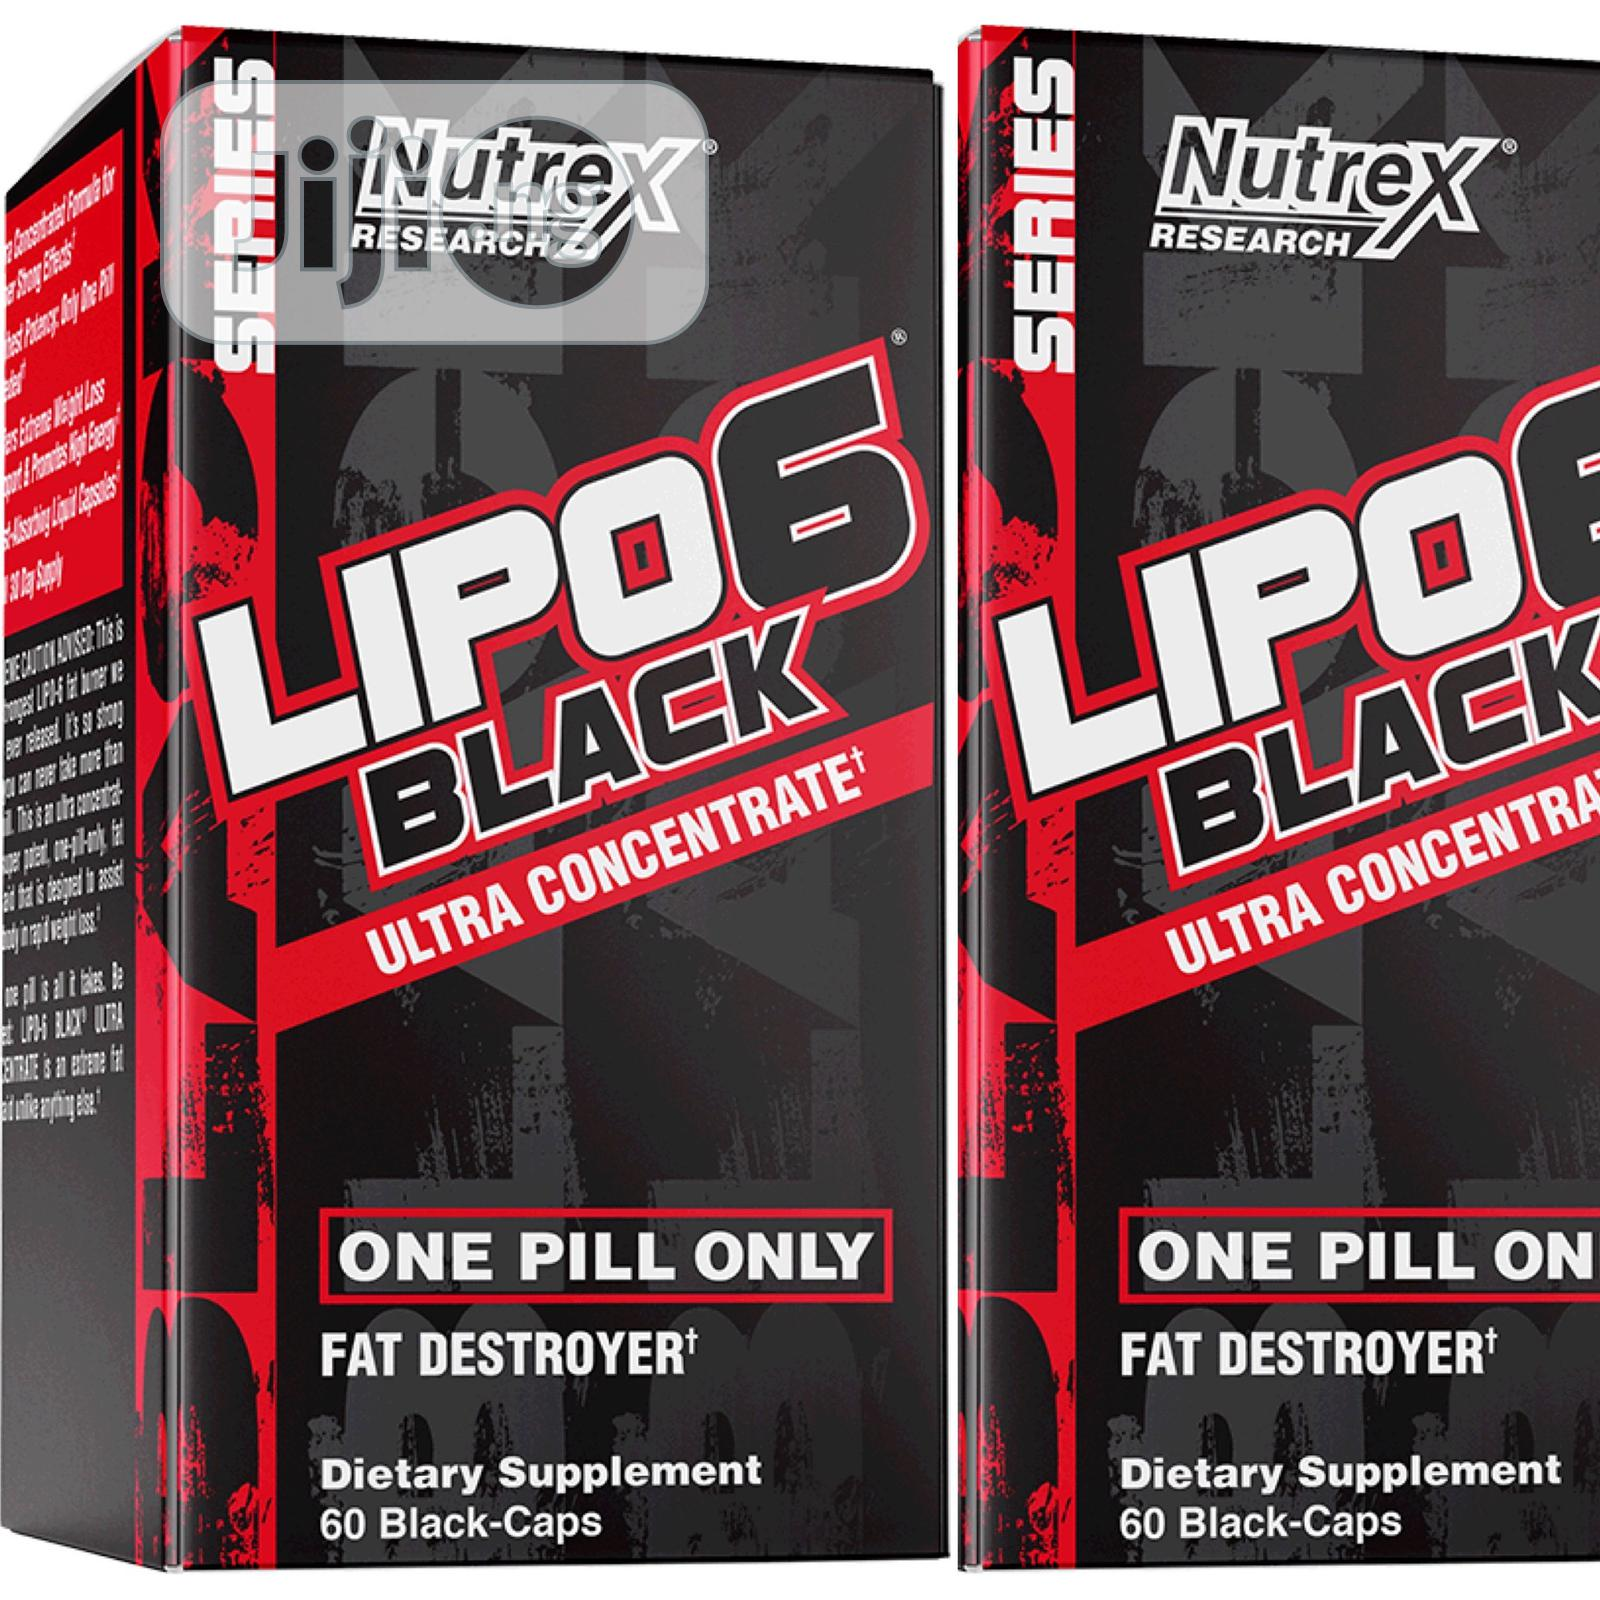 Nutrex Research Lipo-6 Black Ultra Concentrated 30-Caps